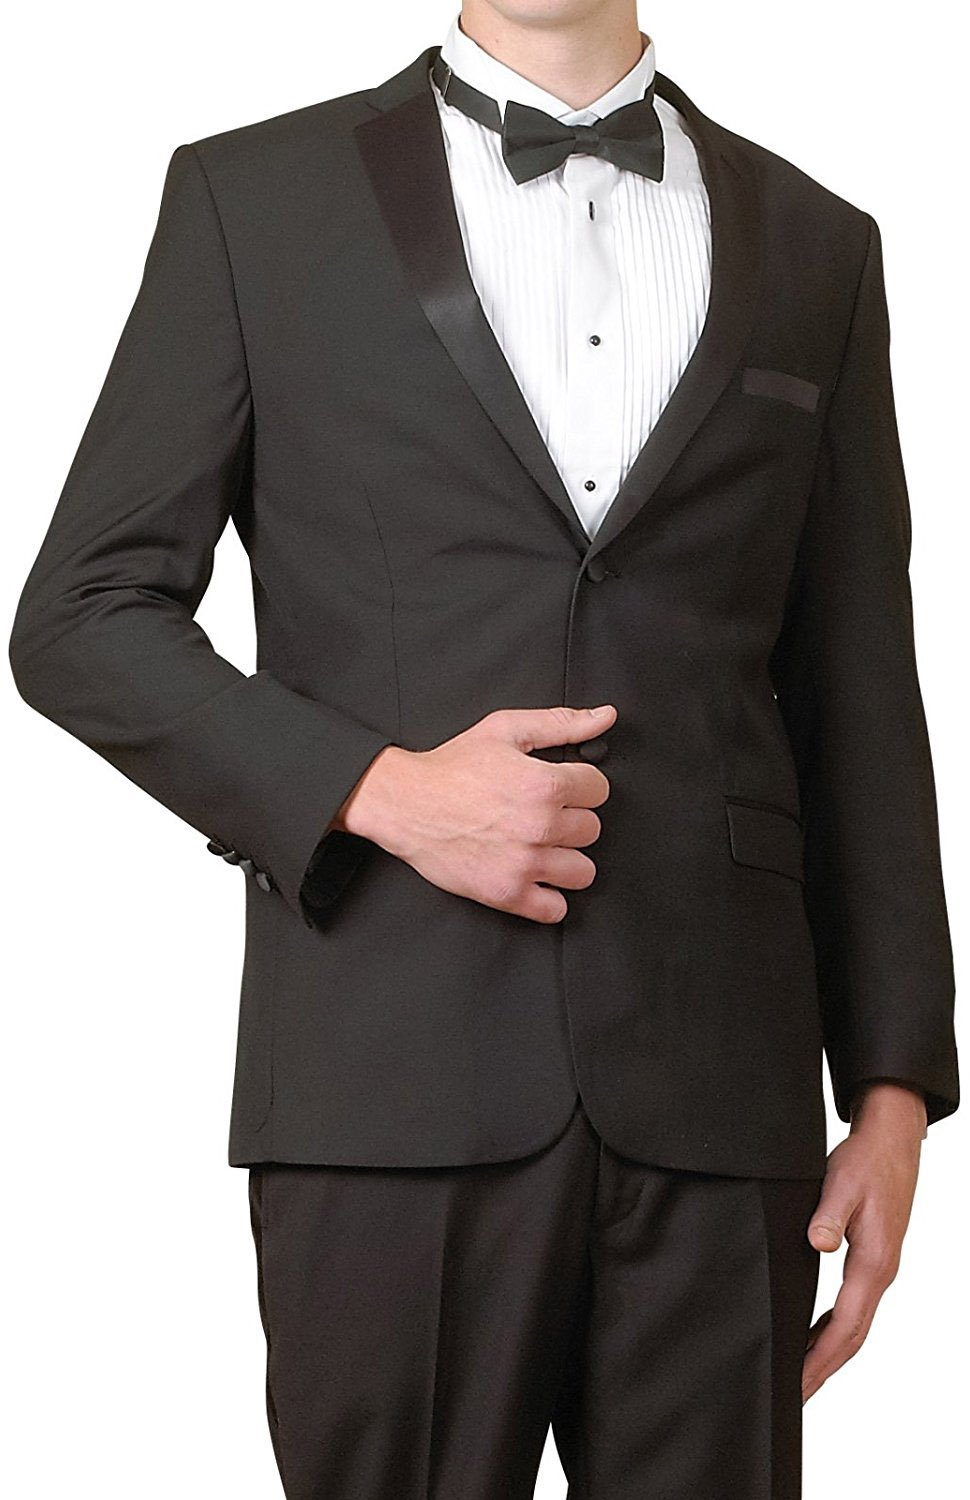 098ba3babb7 Best Rated in Men s Tuxedos   Helpful Customer Reviews - Amazon.com